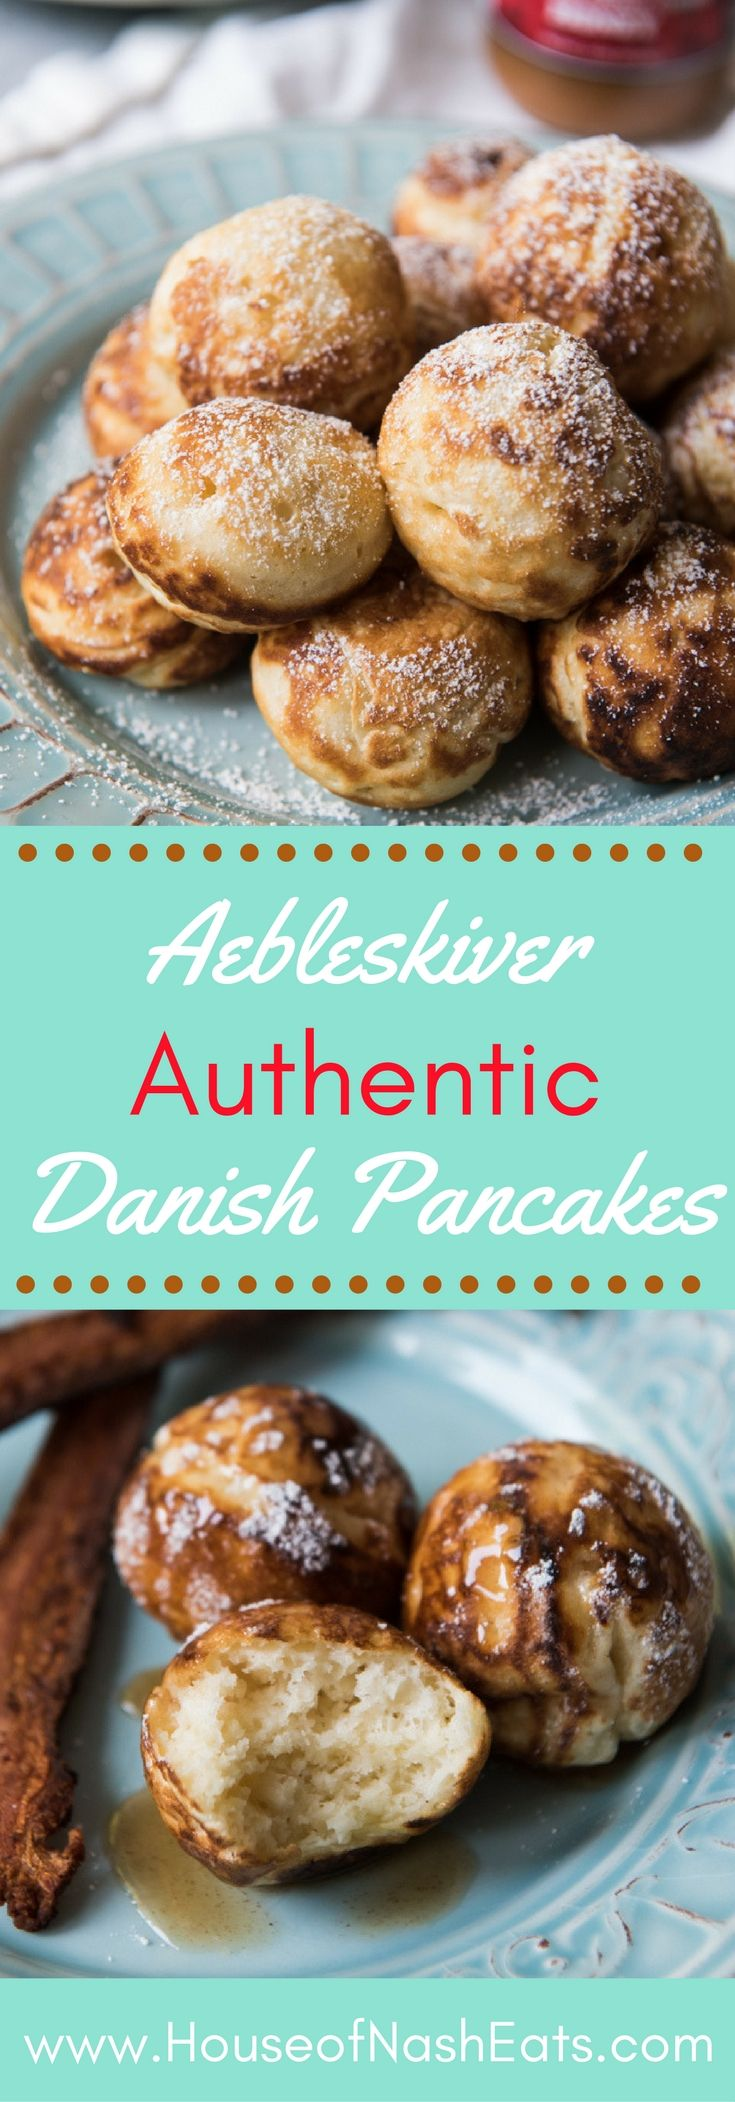 Aebleskiver are authentic puffy Danish pancake balls and a traditional Danish dessert most often served during the Christmas season. Enjoy them year-round as a delicious breakfast treat! #aebleskiver #ebelskiver #danish #breakfast #dessert #Christmas